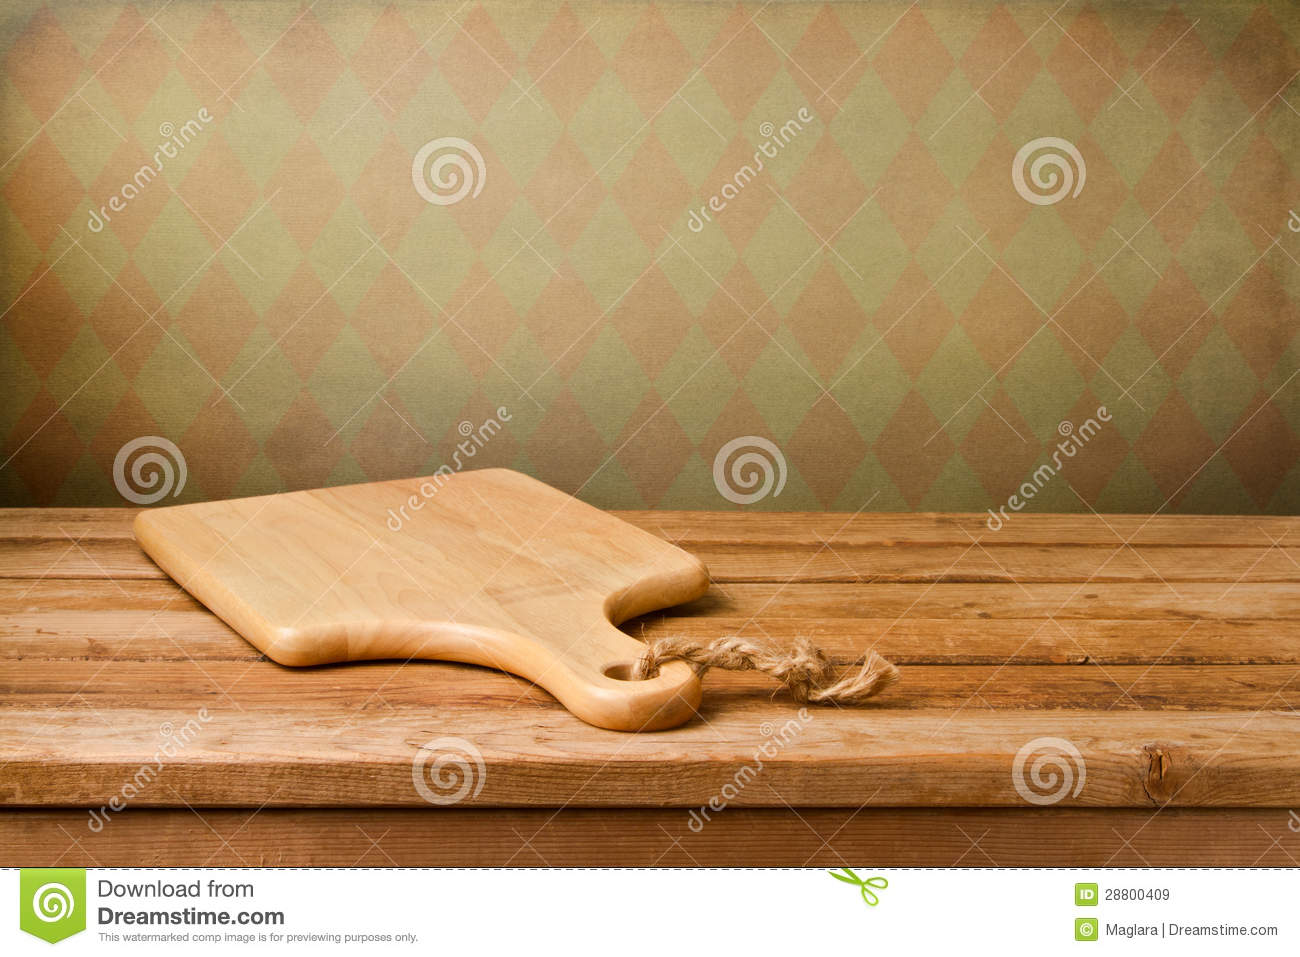 Background With Cutting Board Stock Image Image 28800409